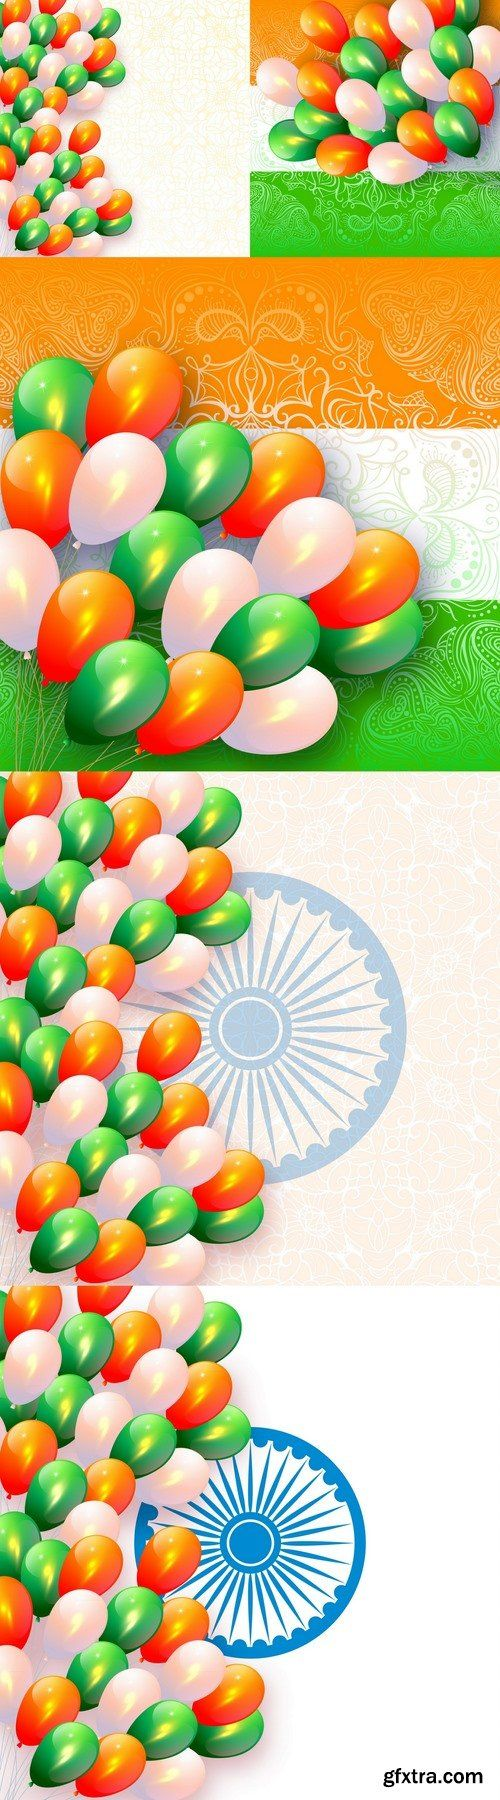 Color caste denomination - Indian Flag Colors Independence Day Http Webtutorsliv Ml Threads